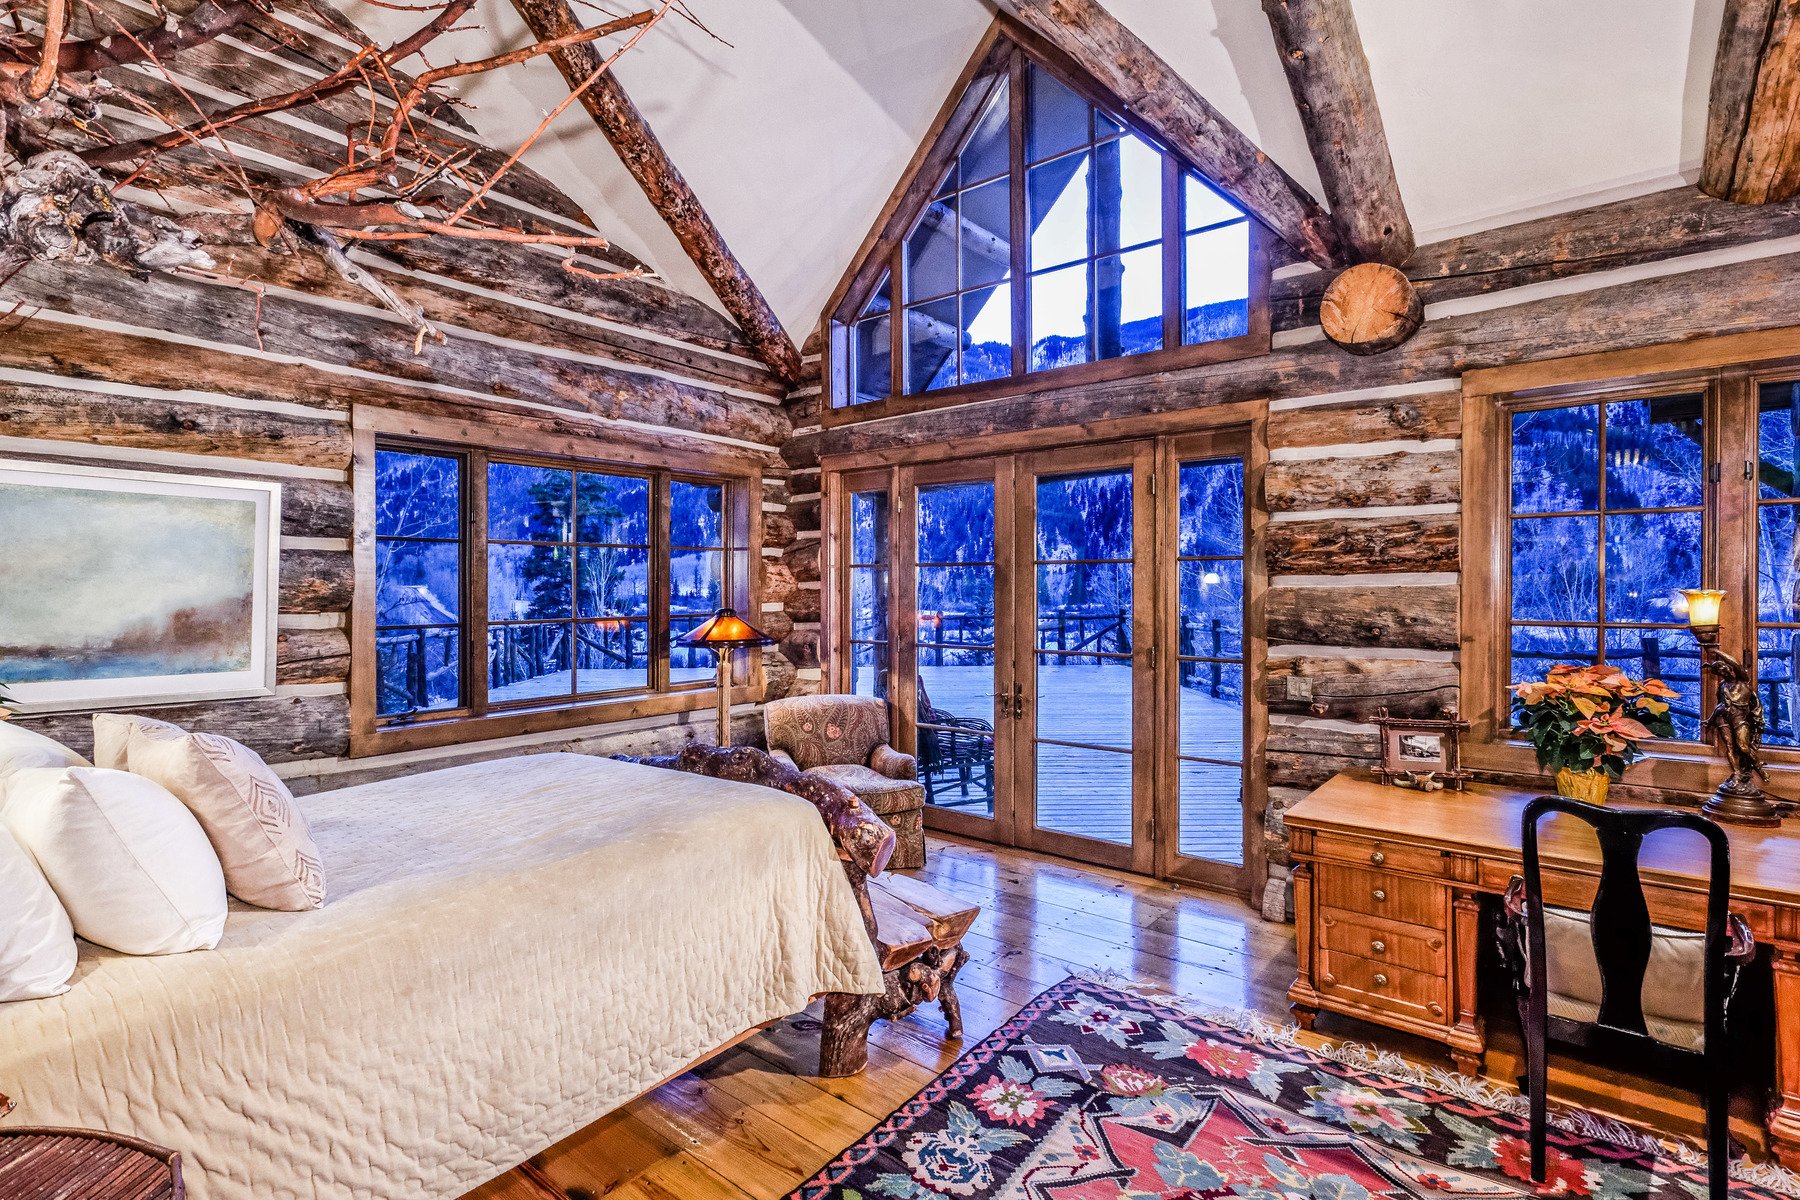 Additional photo for property listing at Northstar Lodge 43777 Hwy 82 Aspen, Colorado 81611 United States